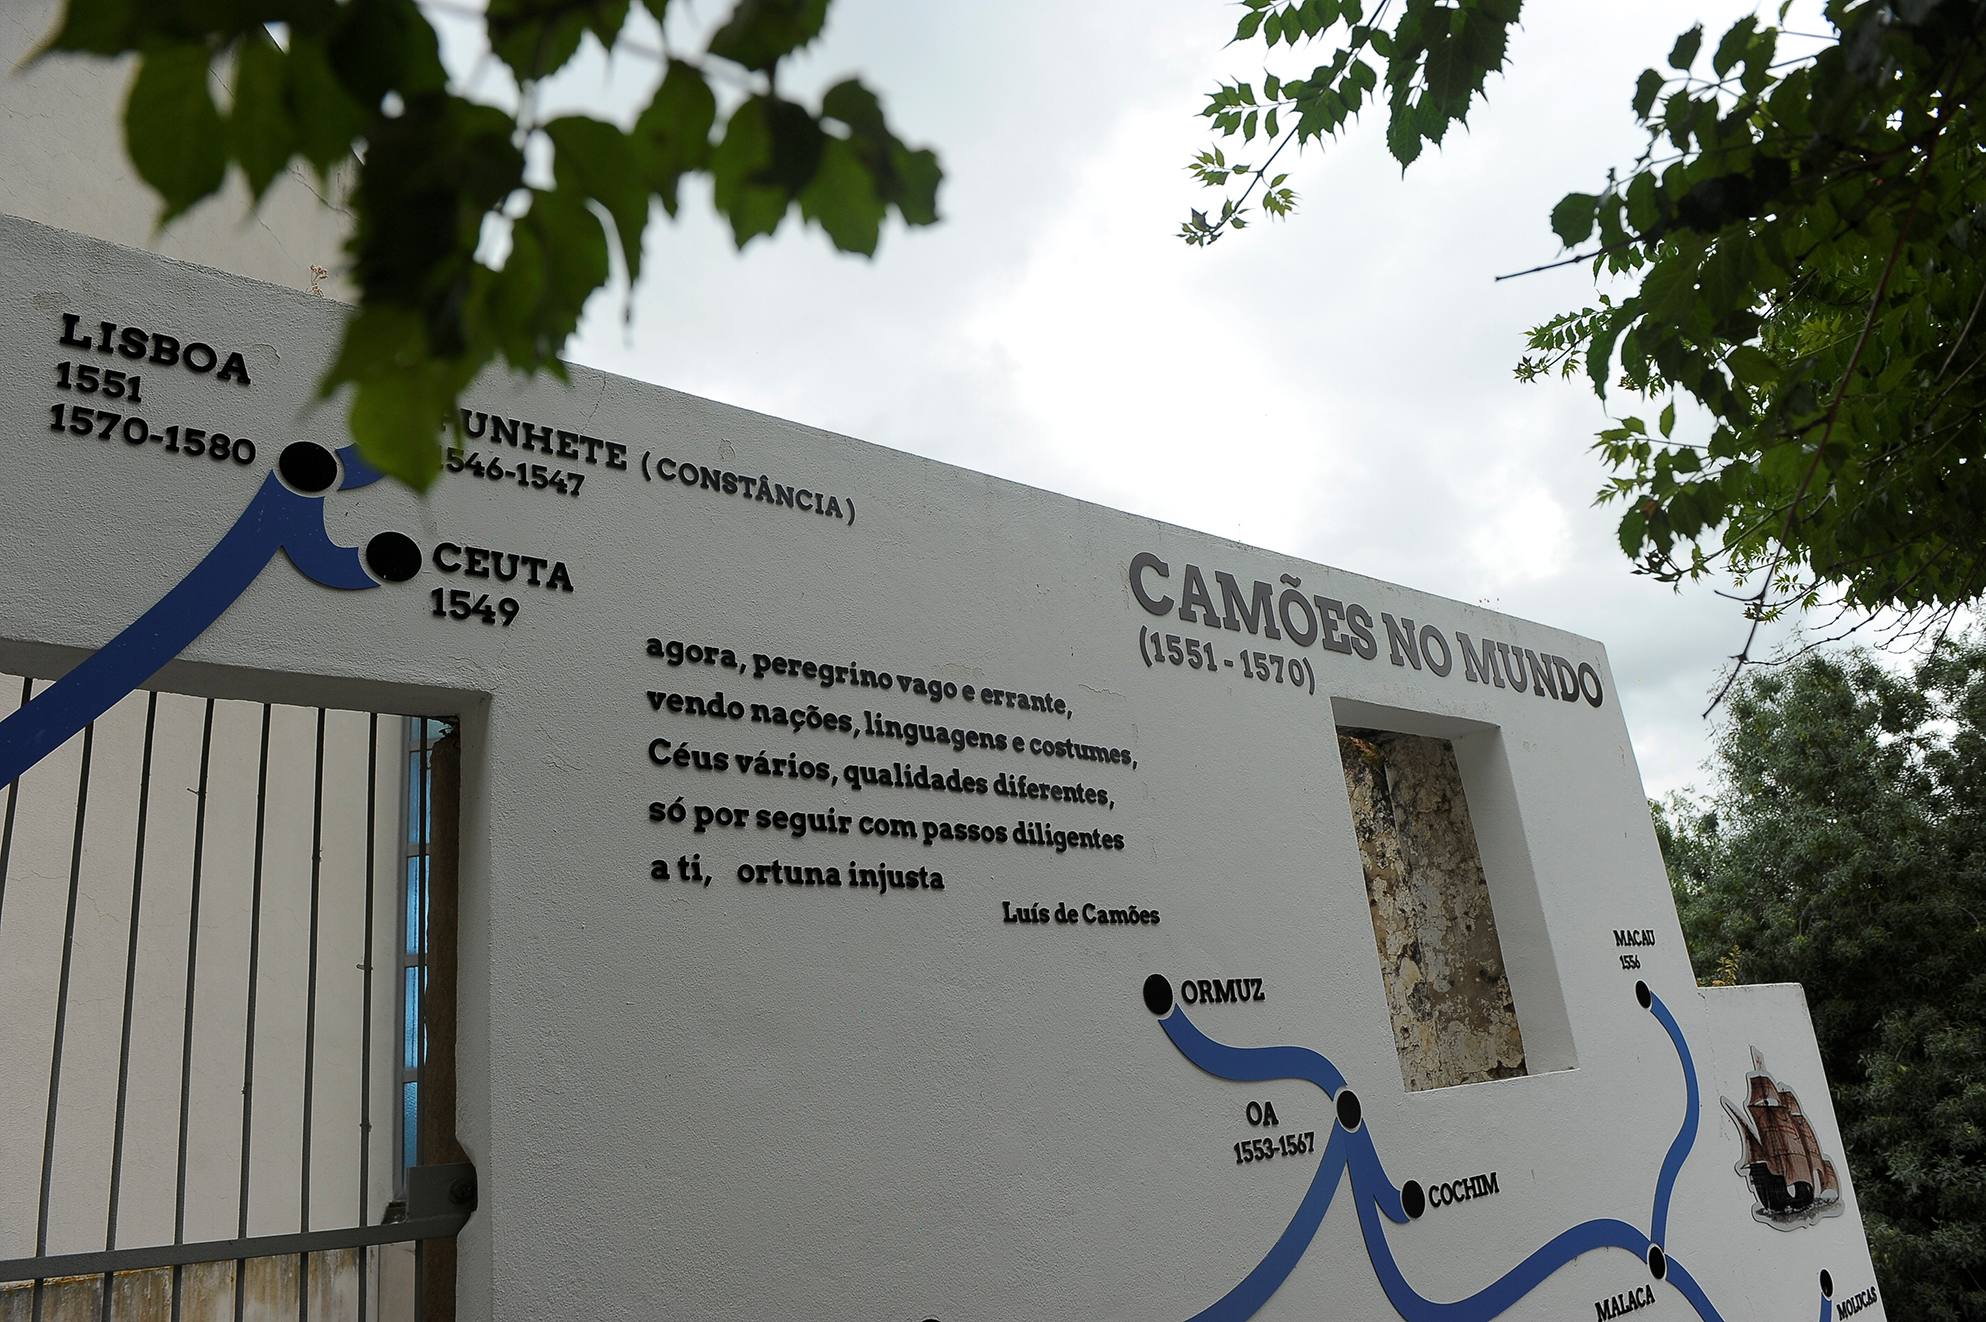 facade of the Casa Camões building in Constância